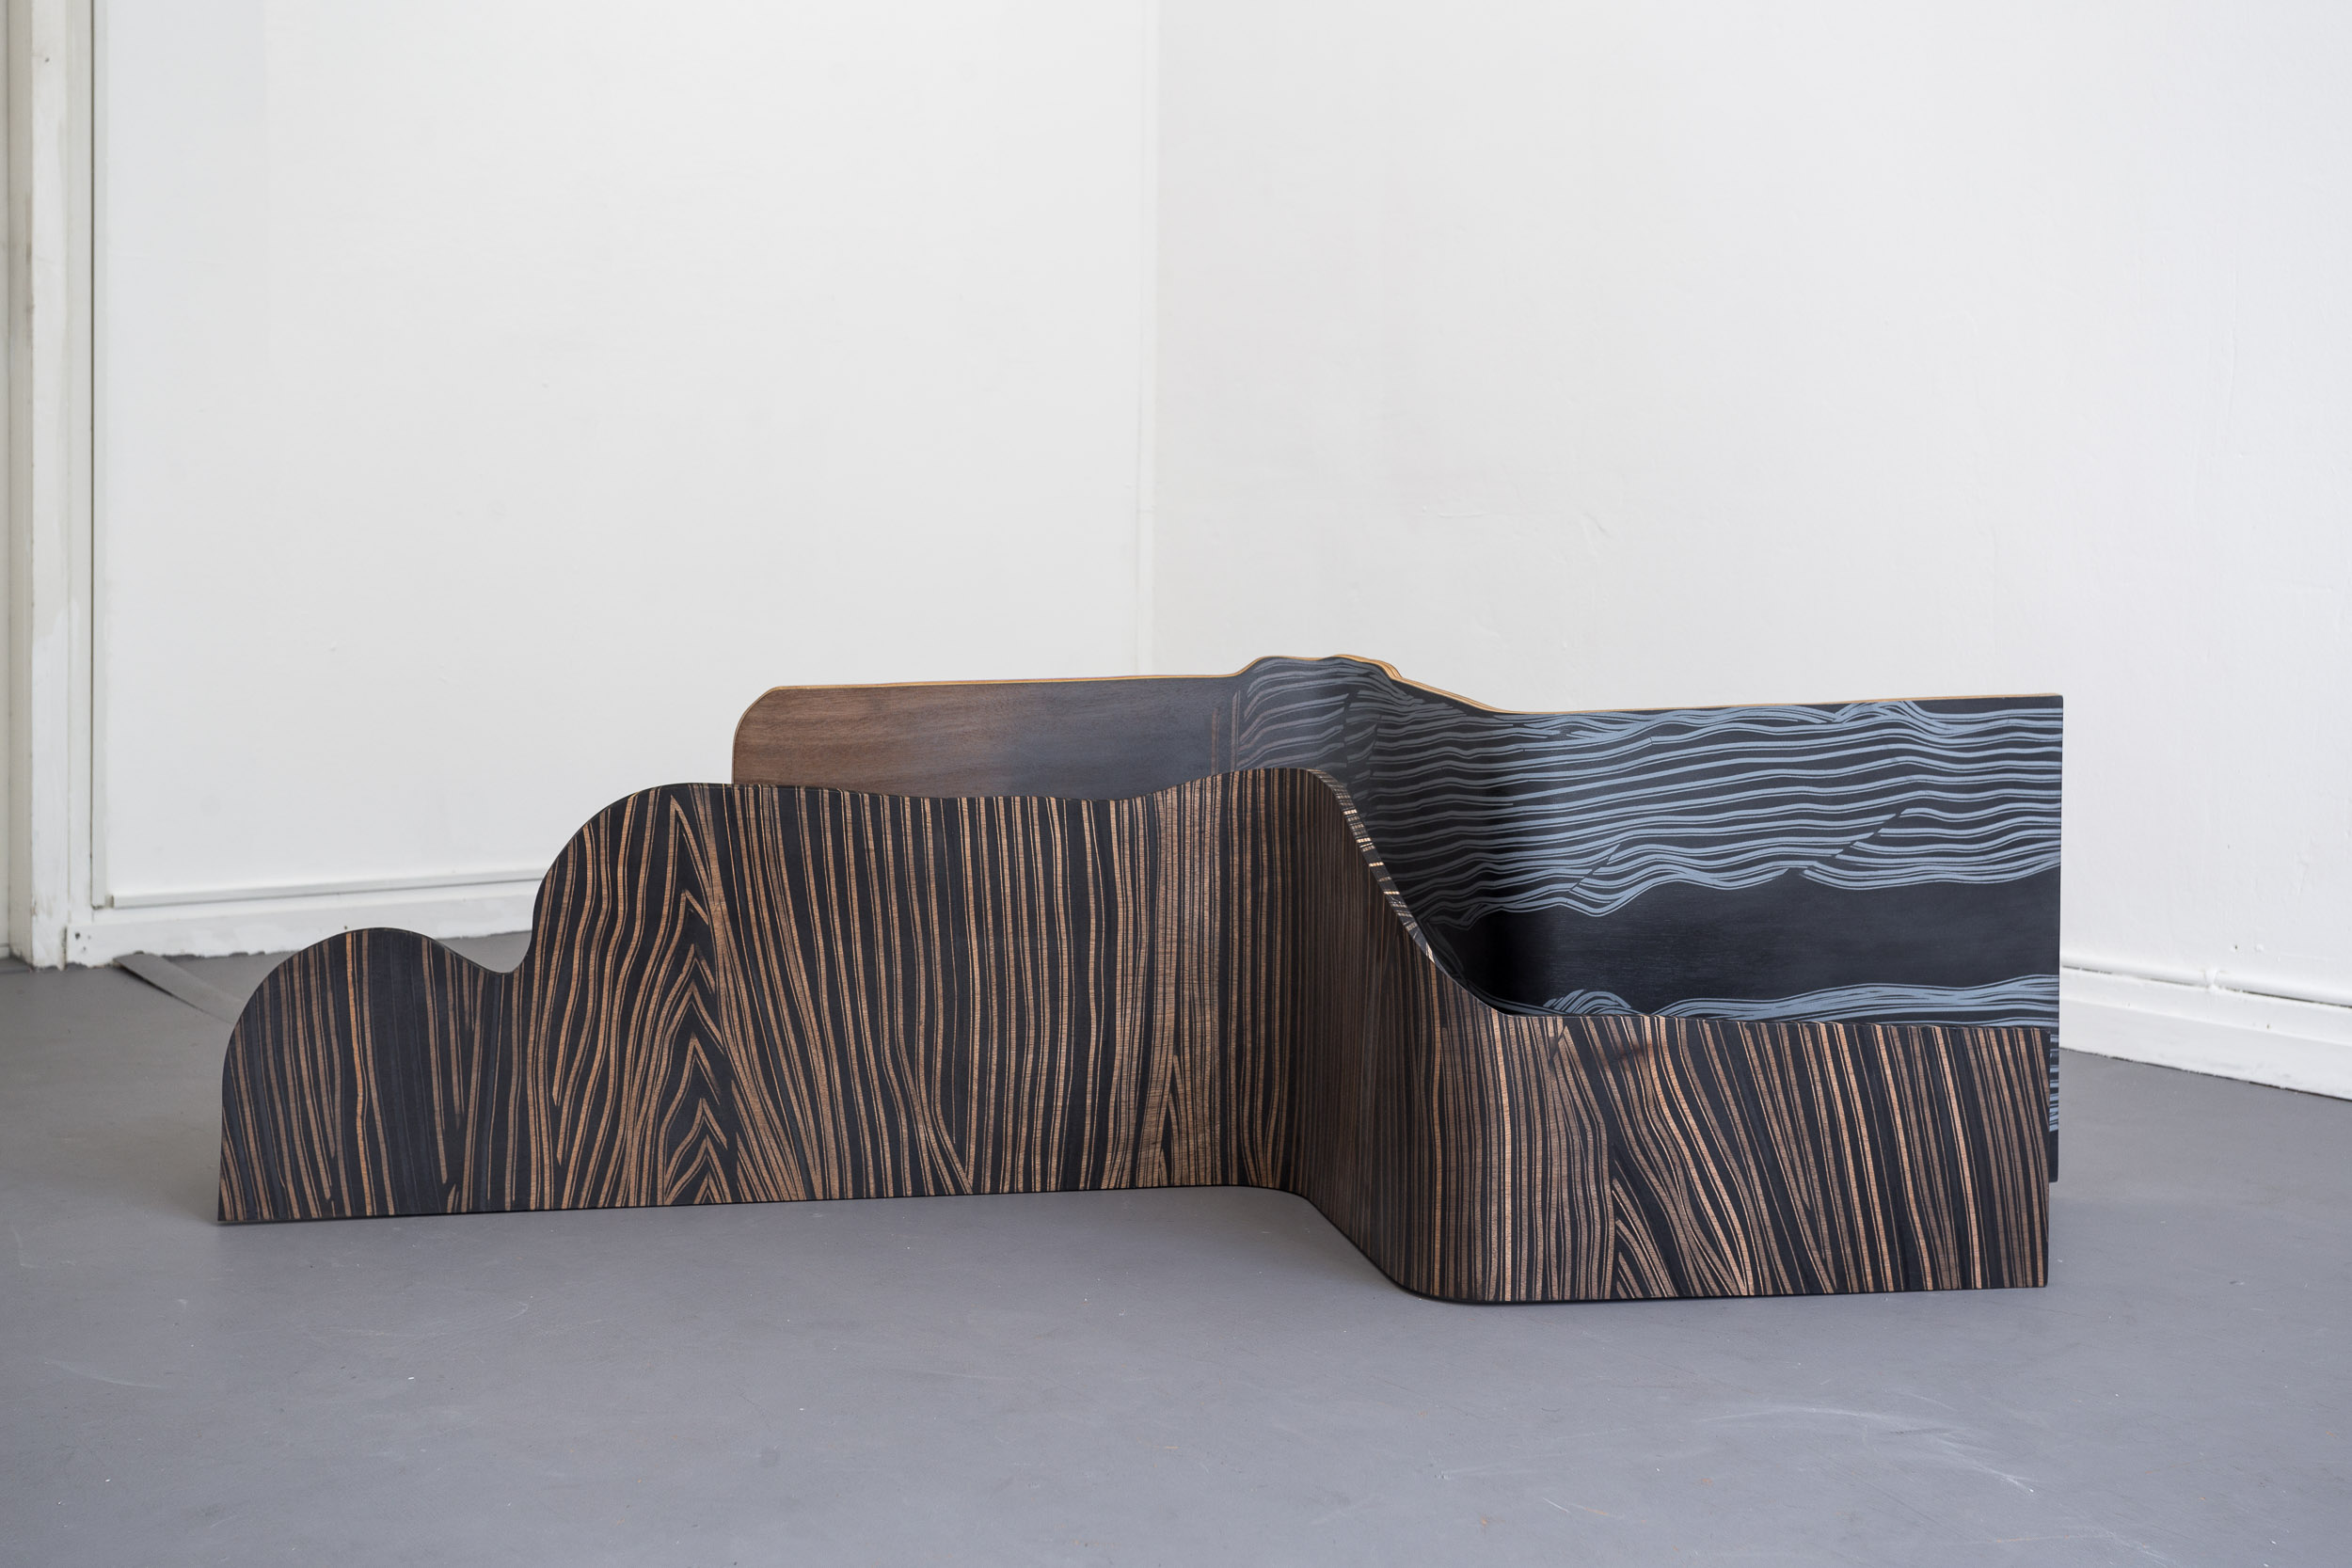 Fiona Banner,  Spooning Chairs , 2015, graphite, vinyl, plywood, chair base, 144 x 52 x 36 cm; 158 x 46 x 51 cm  Photo: Kilian Bannwart